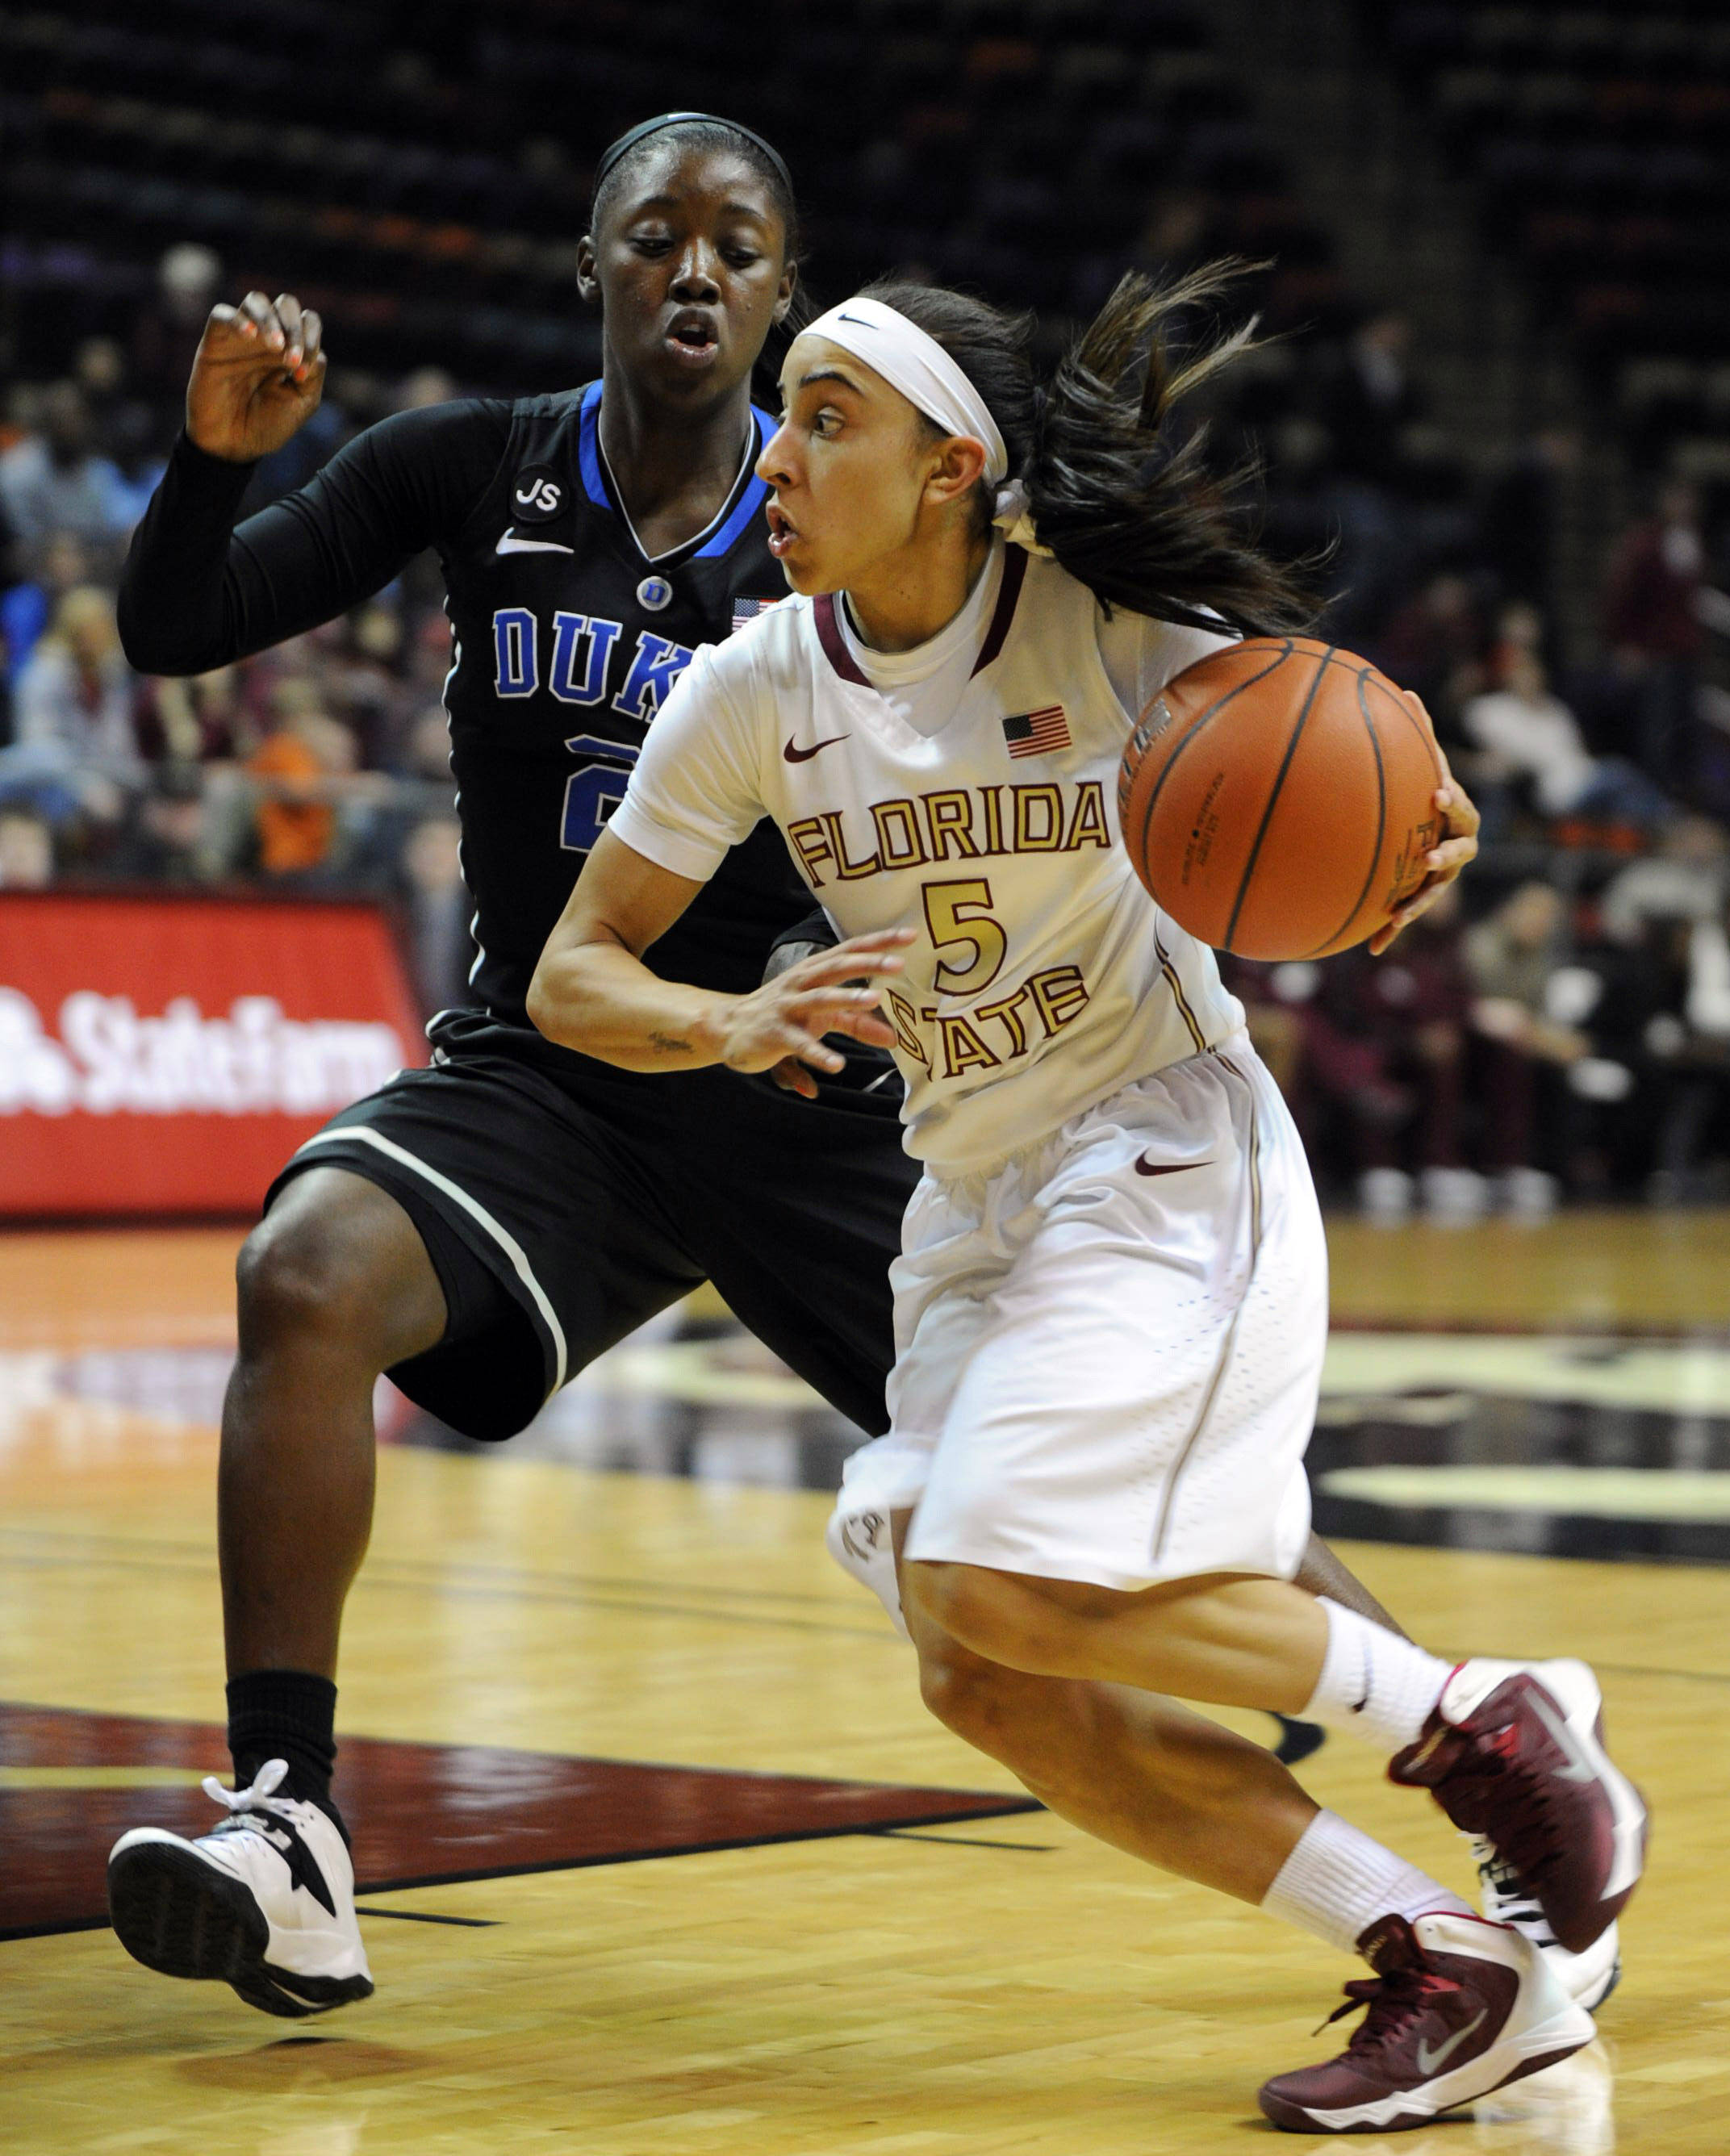 Jan 23, 2014; Tallahassee, FL, USA; Florida State Seminoles guard Cheetah Delgado (5) moves the ball past Duke Blue Devils guard Alexis Jones (2) during the first half of the game at the Donald L. Tucker Center (Tallahassee). Mandatory Credit: Melina Vastola-USA TODAY Sports